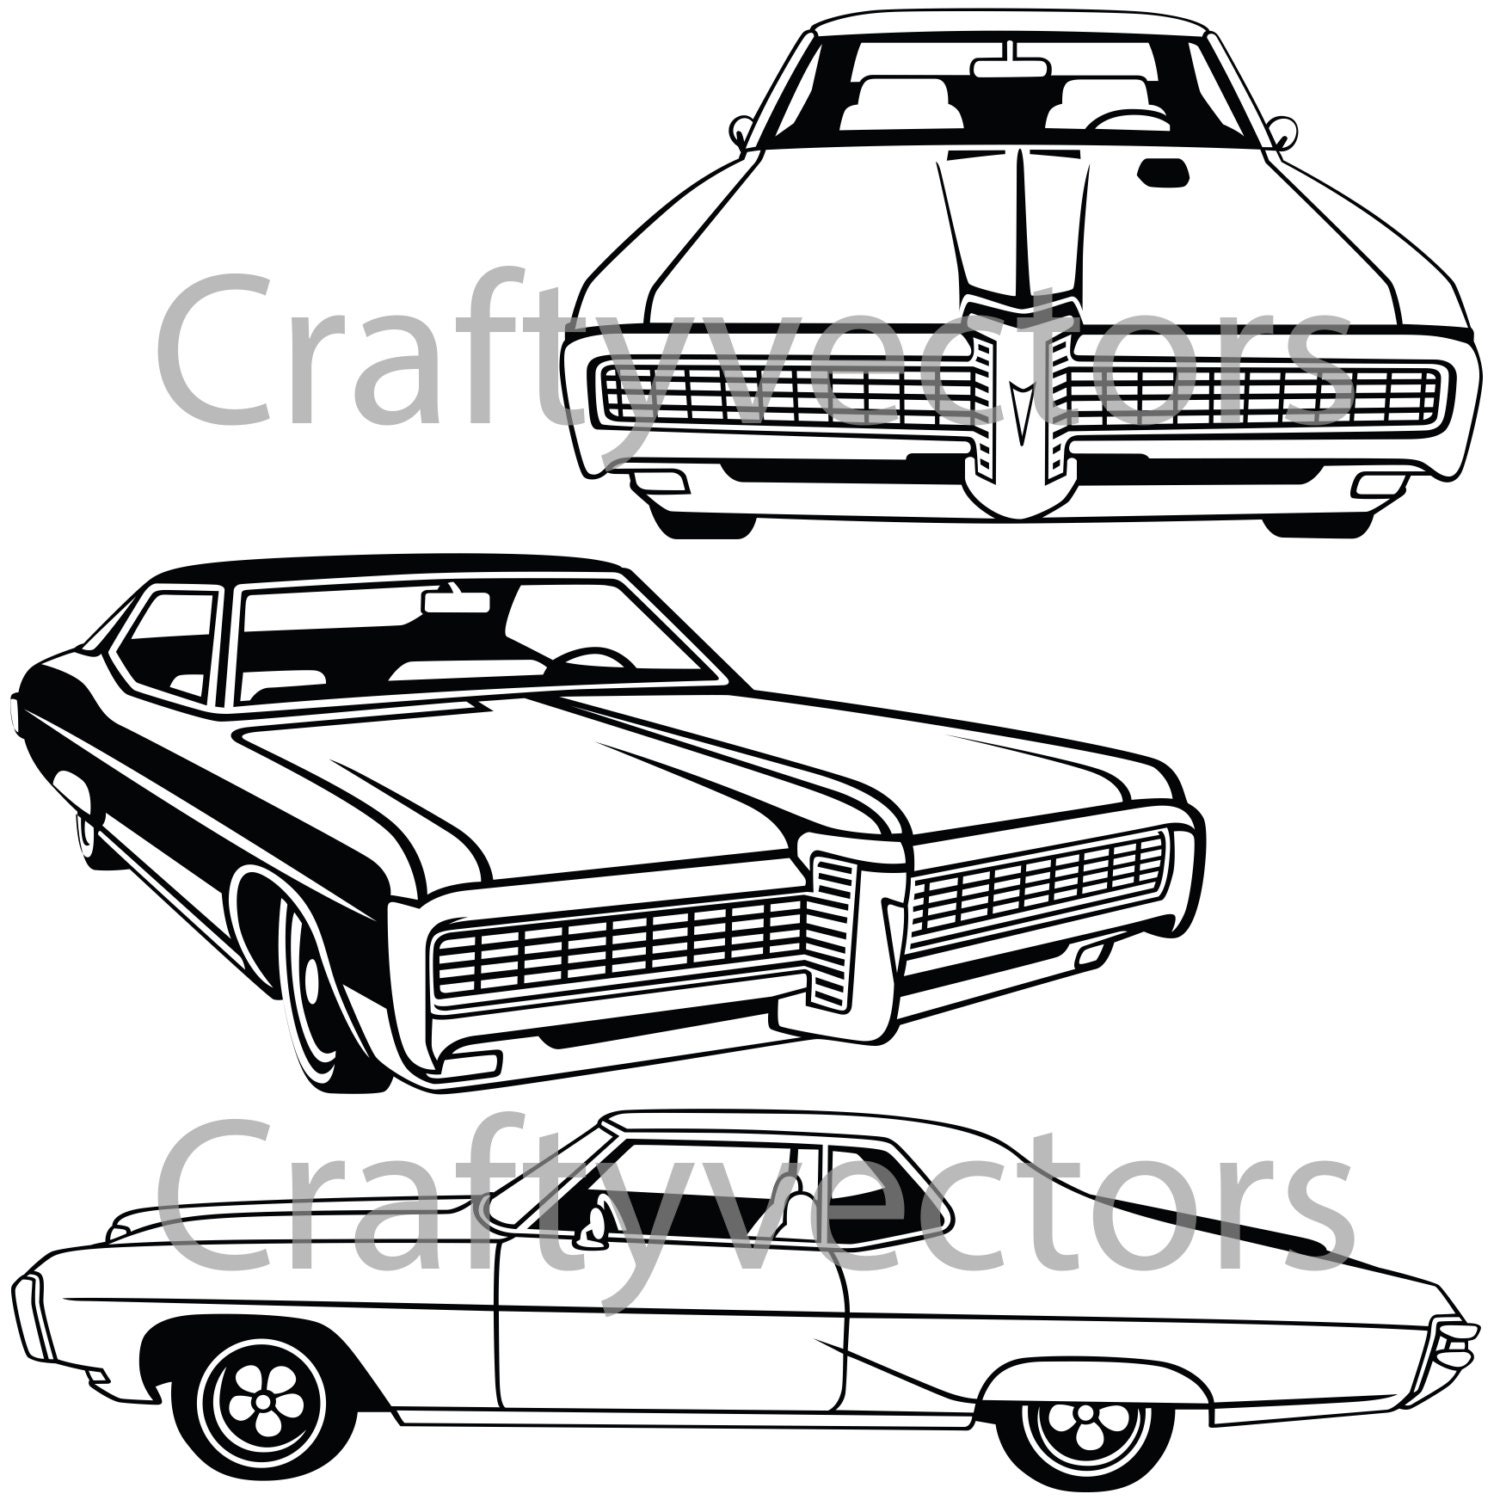 pontiac grand prix 1968 car vector file etsy Model Car Kits 50